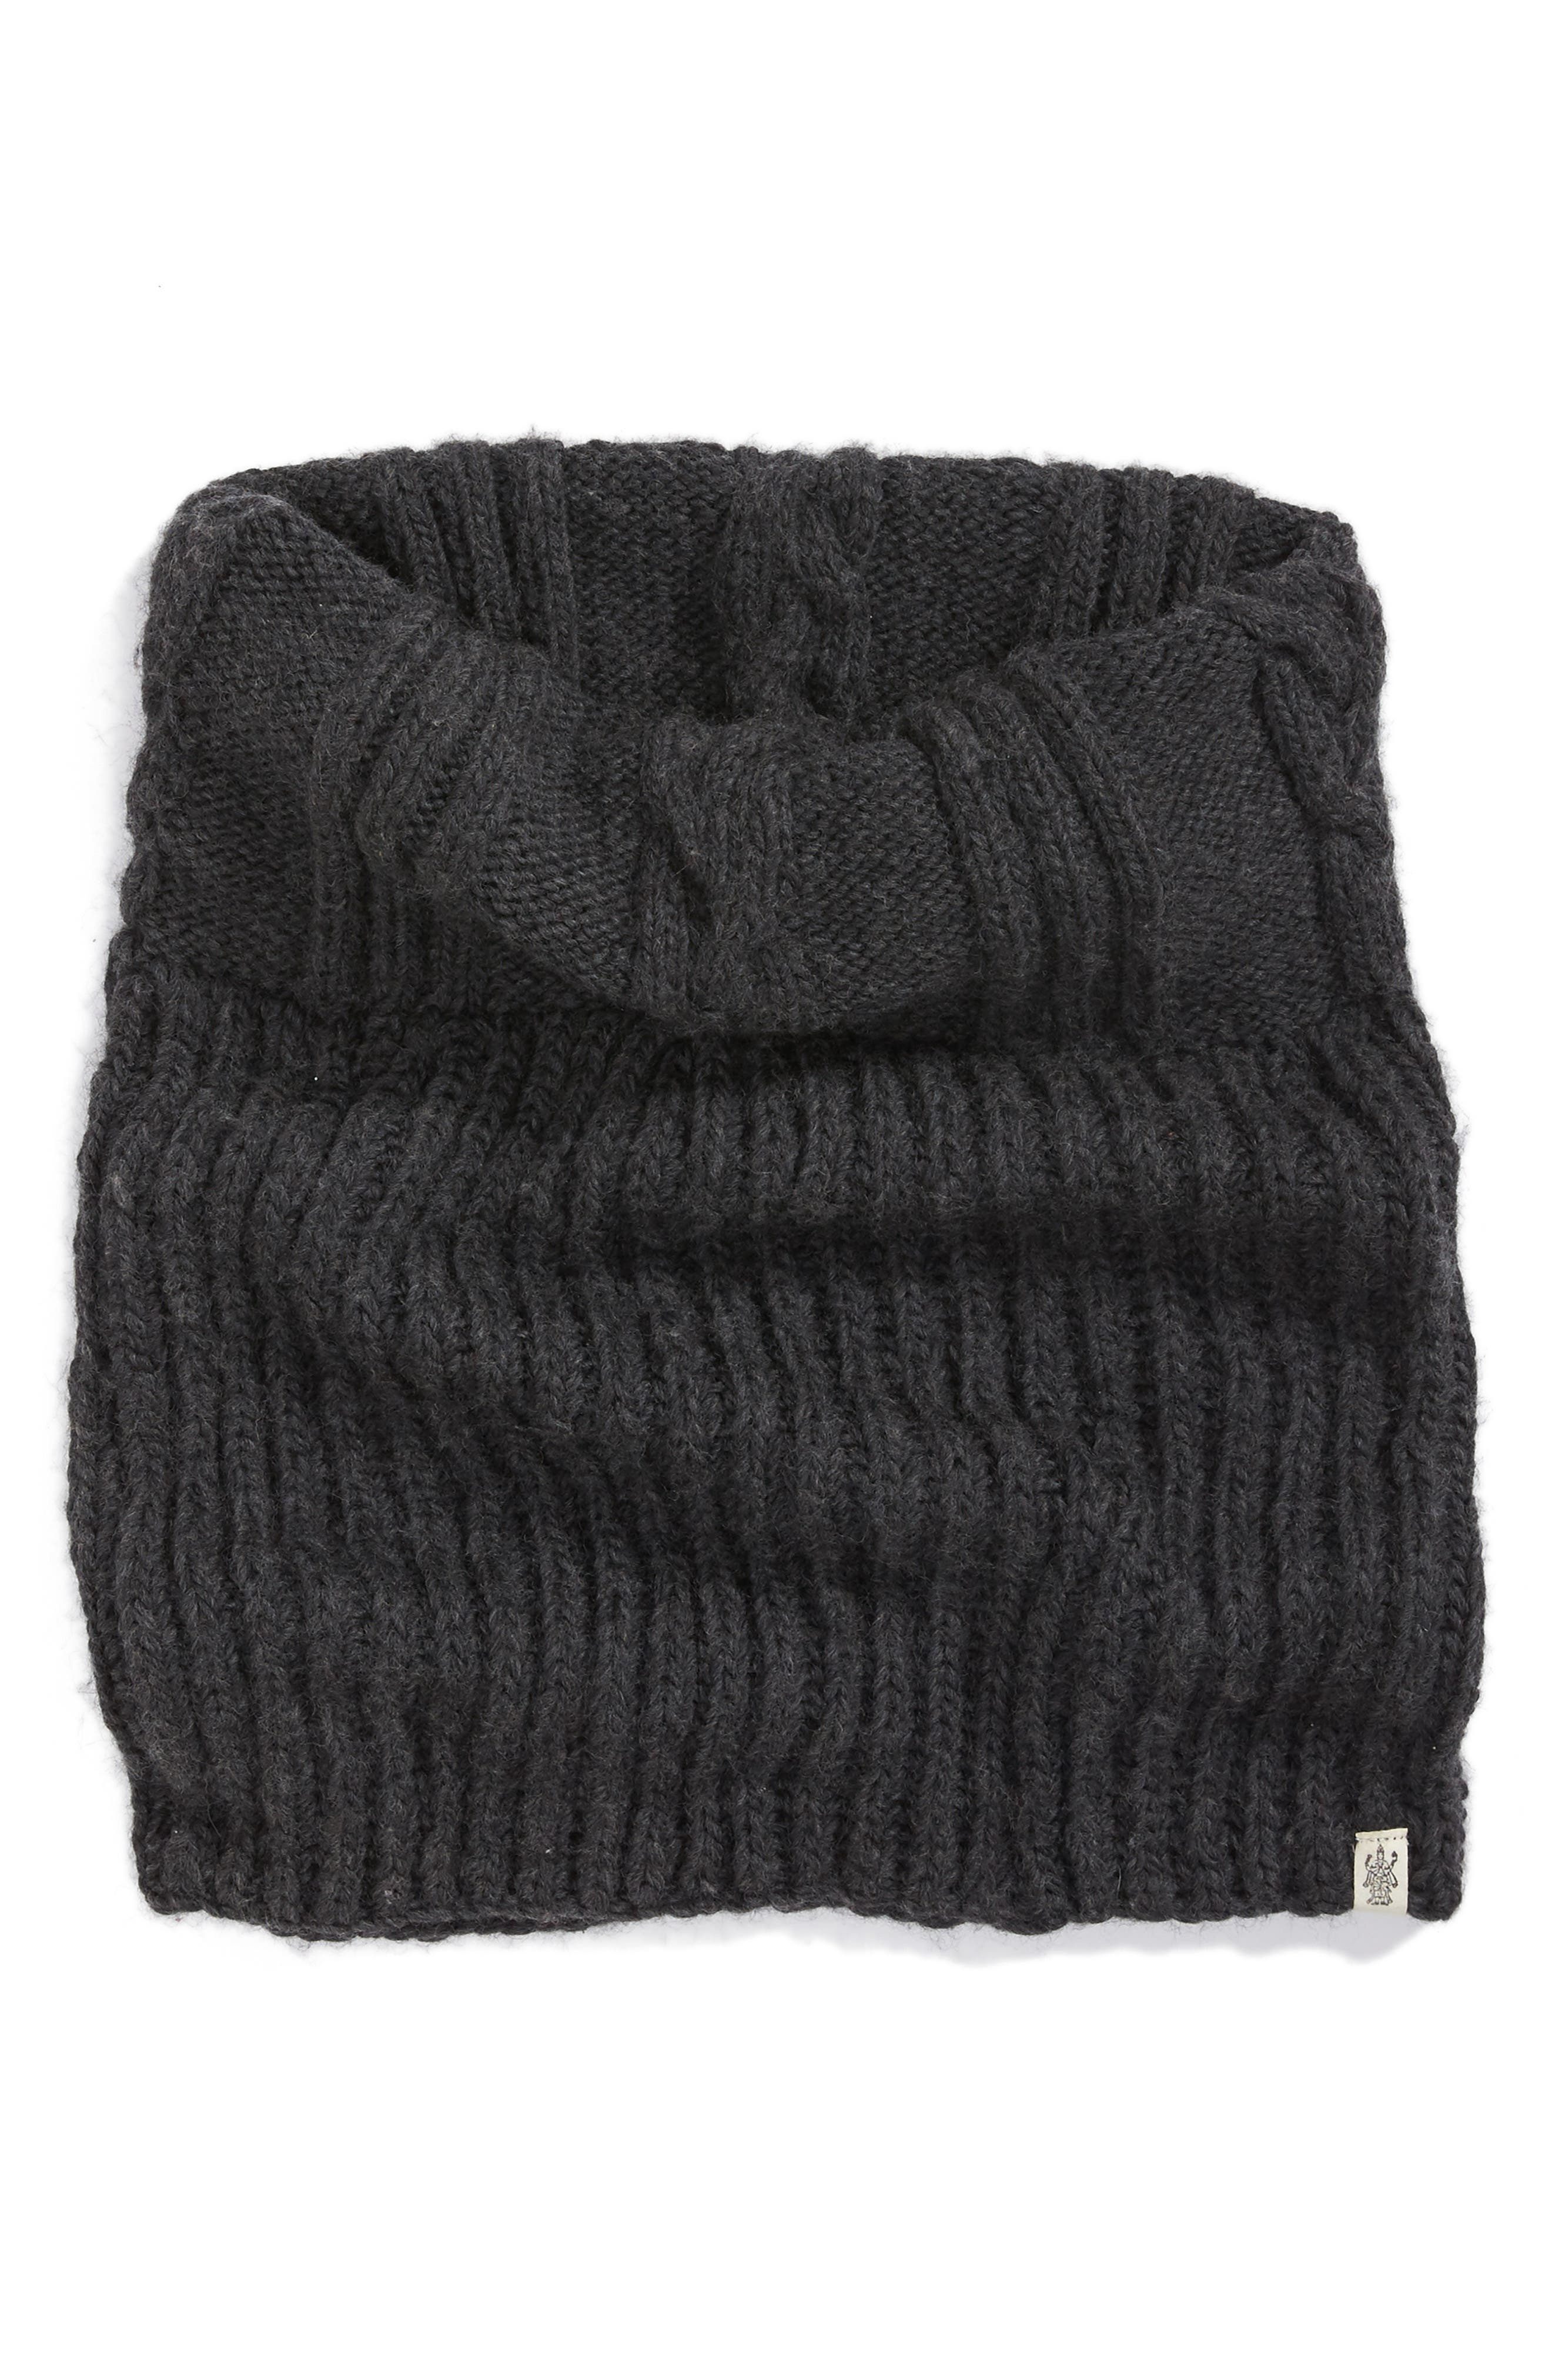 Oversize Cable Knit Wool Infinity Scarf,                         Main,                         color, Charcoal